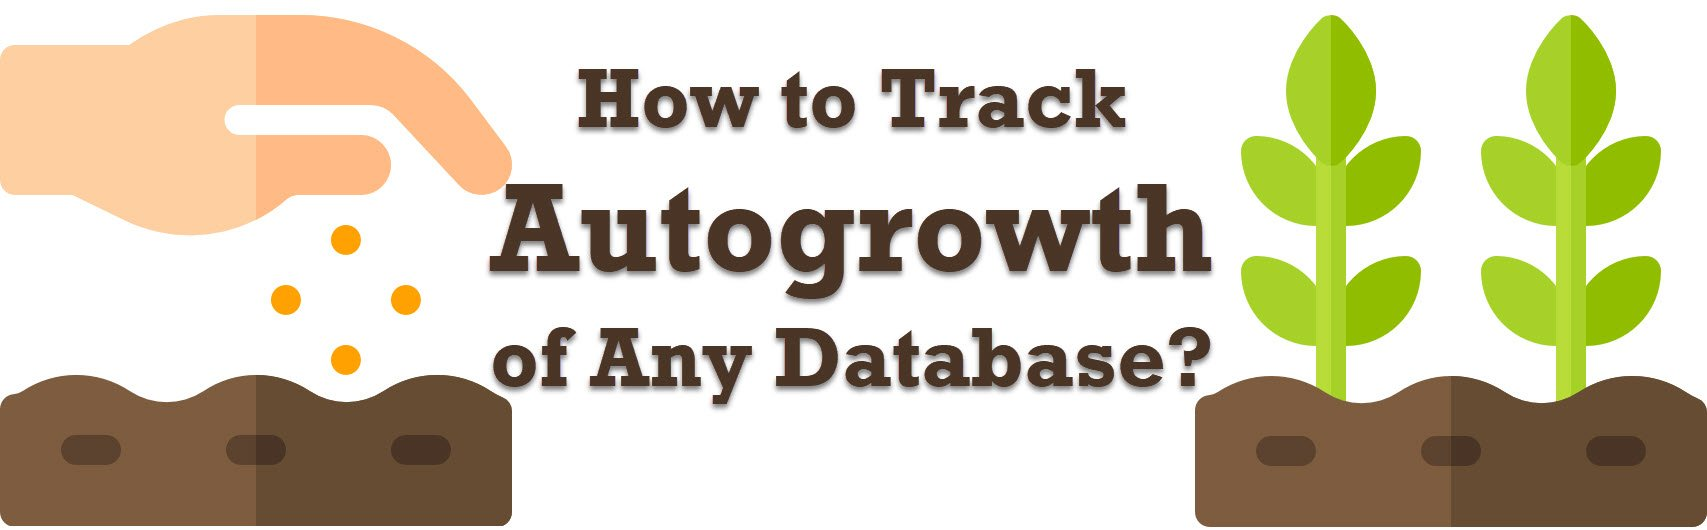 How to Track Autogrowth of Any Database? - Interview Question of the